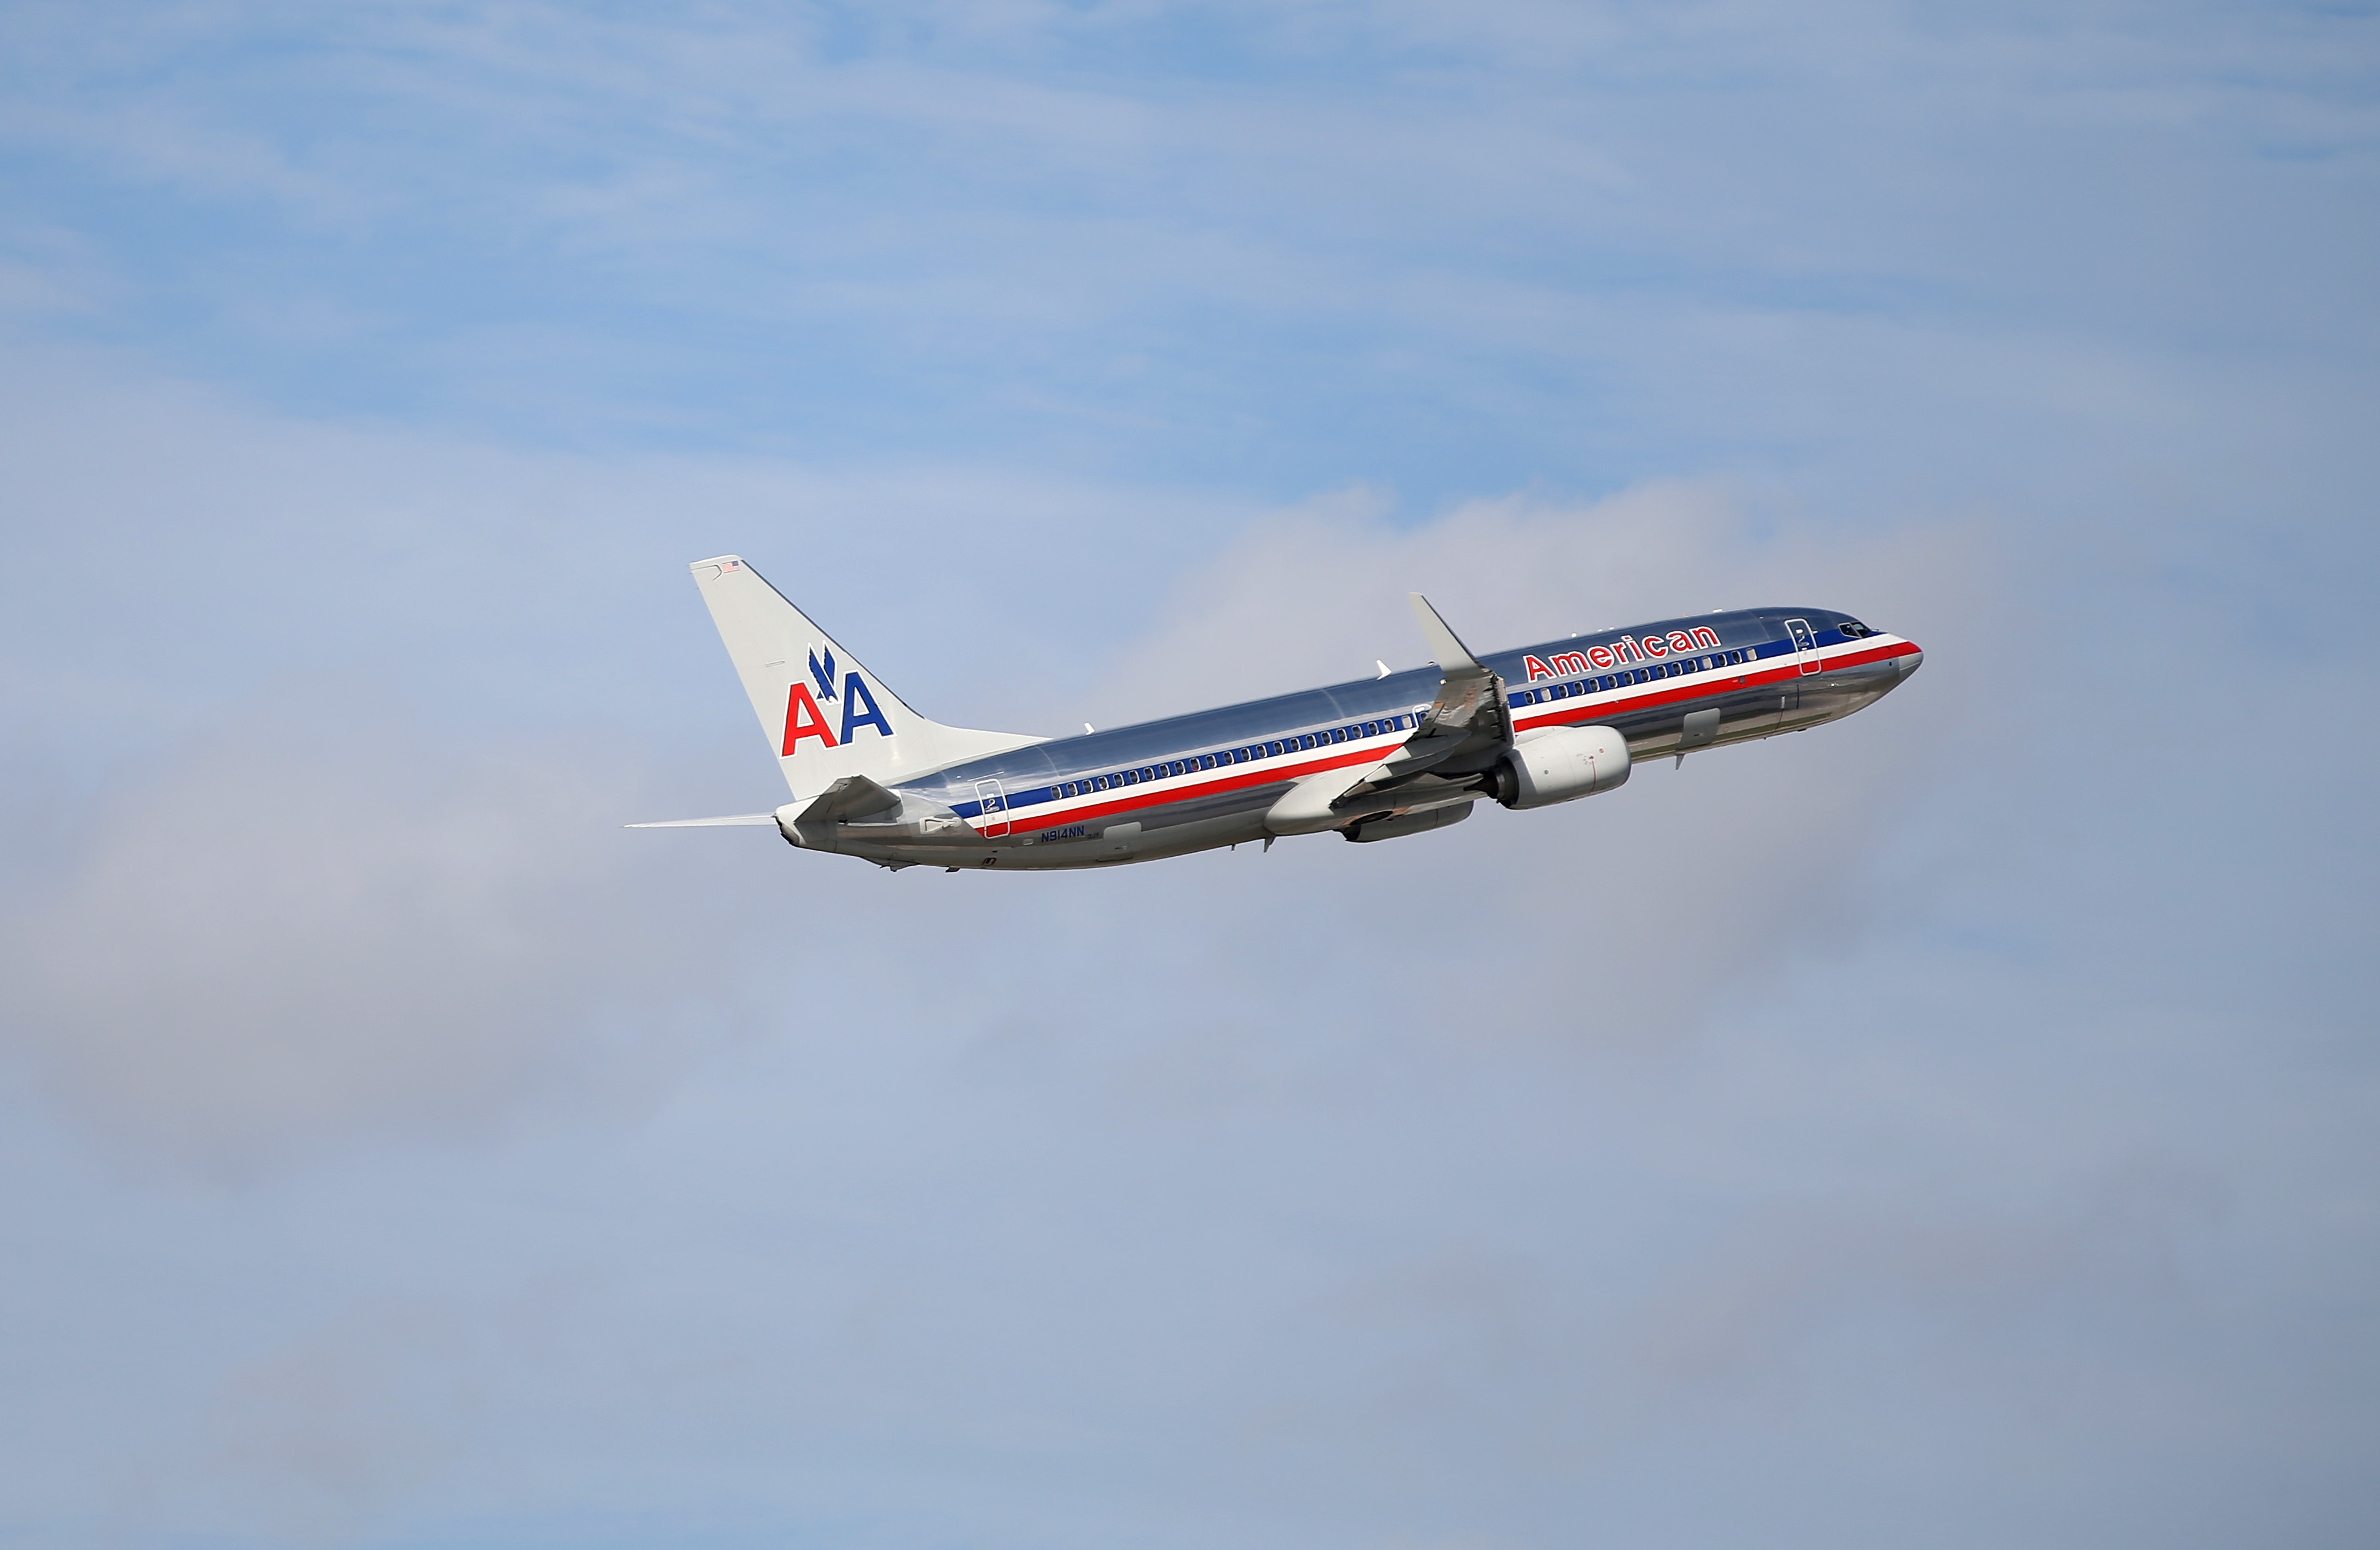 An American Airlines plane takes off from the Miami International Airport on Nov. 12, 2013 in Miami, Florida.